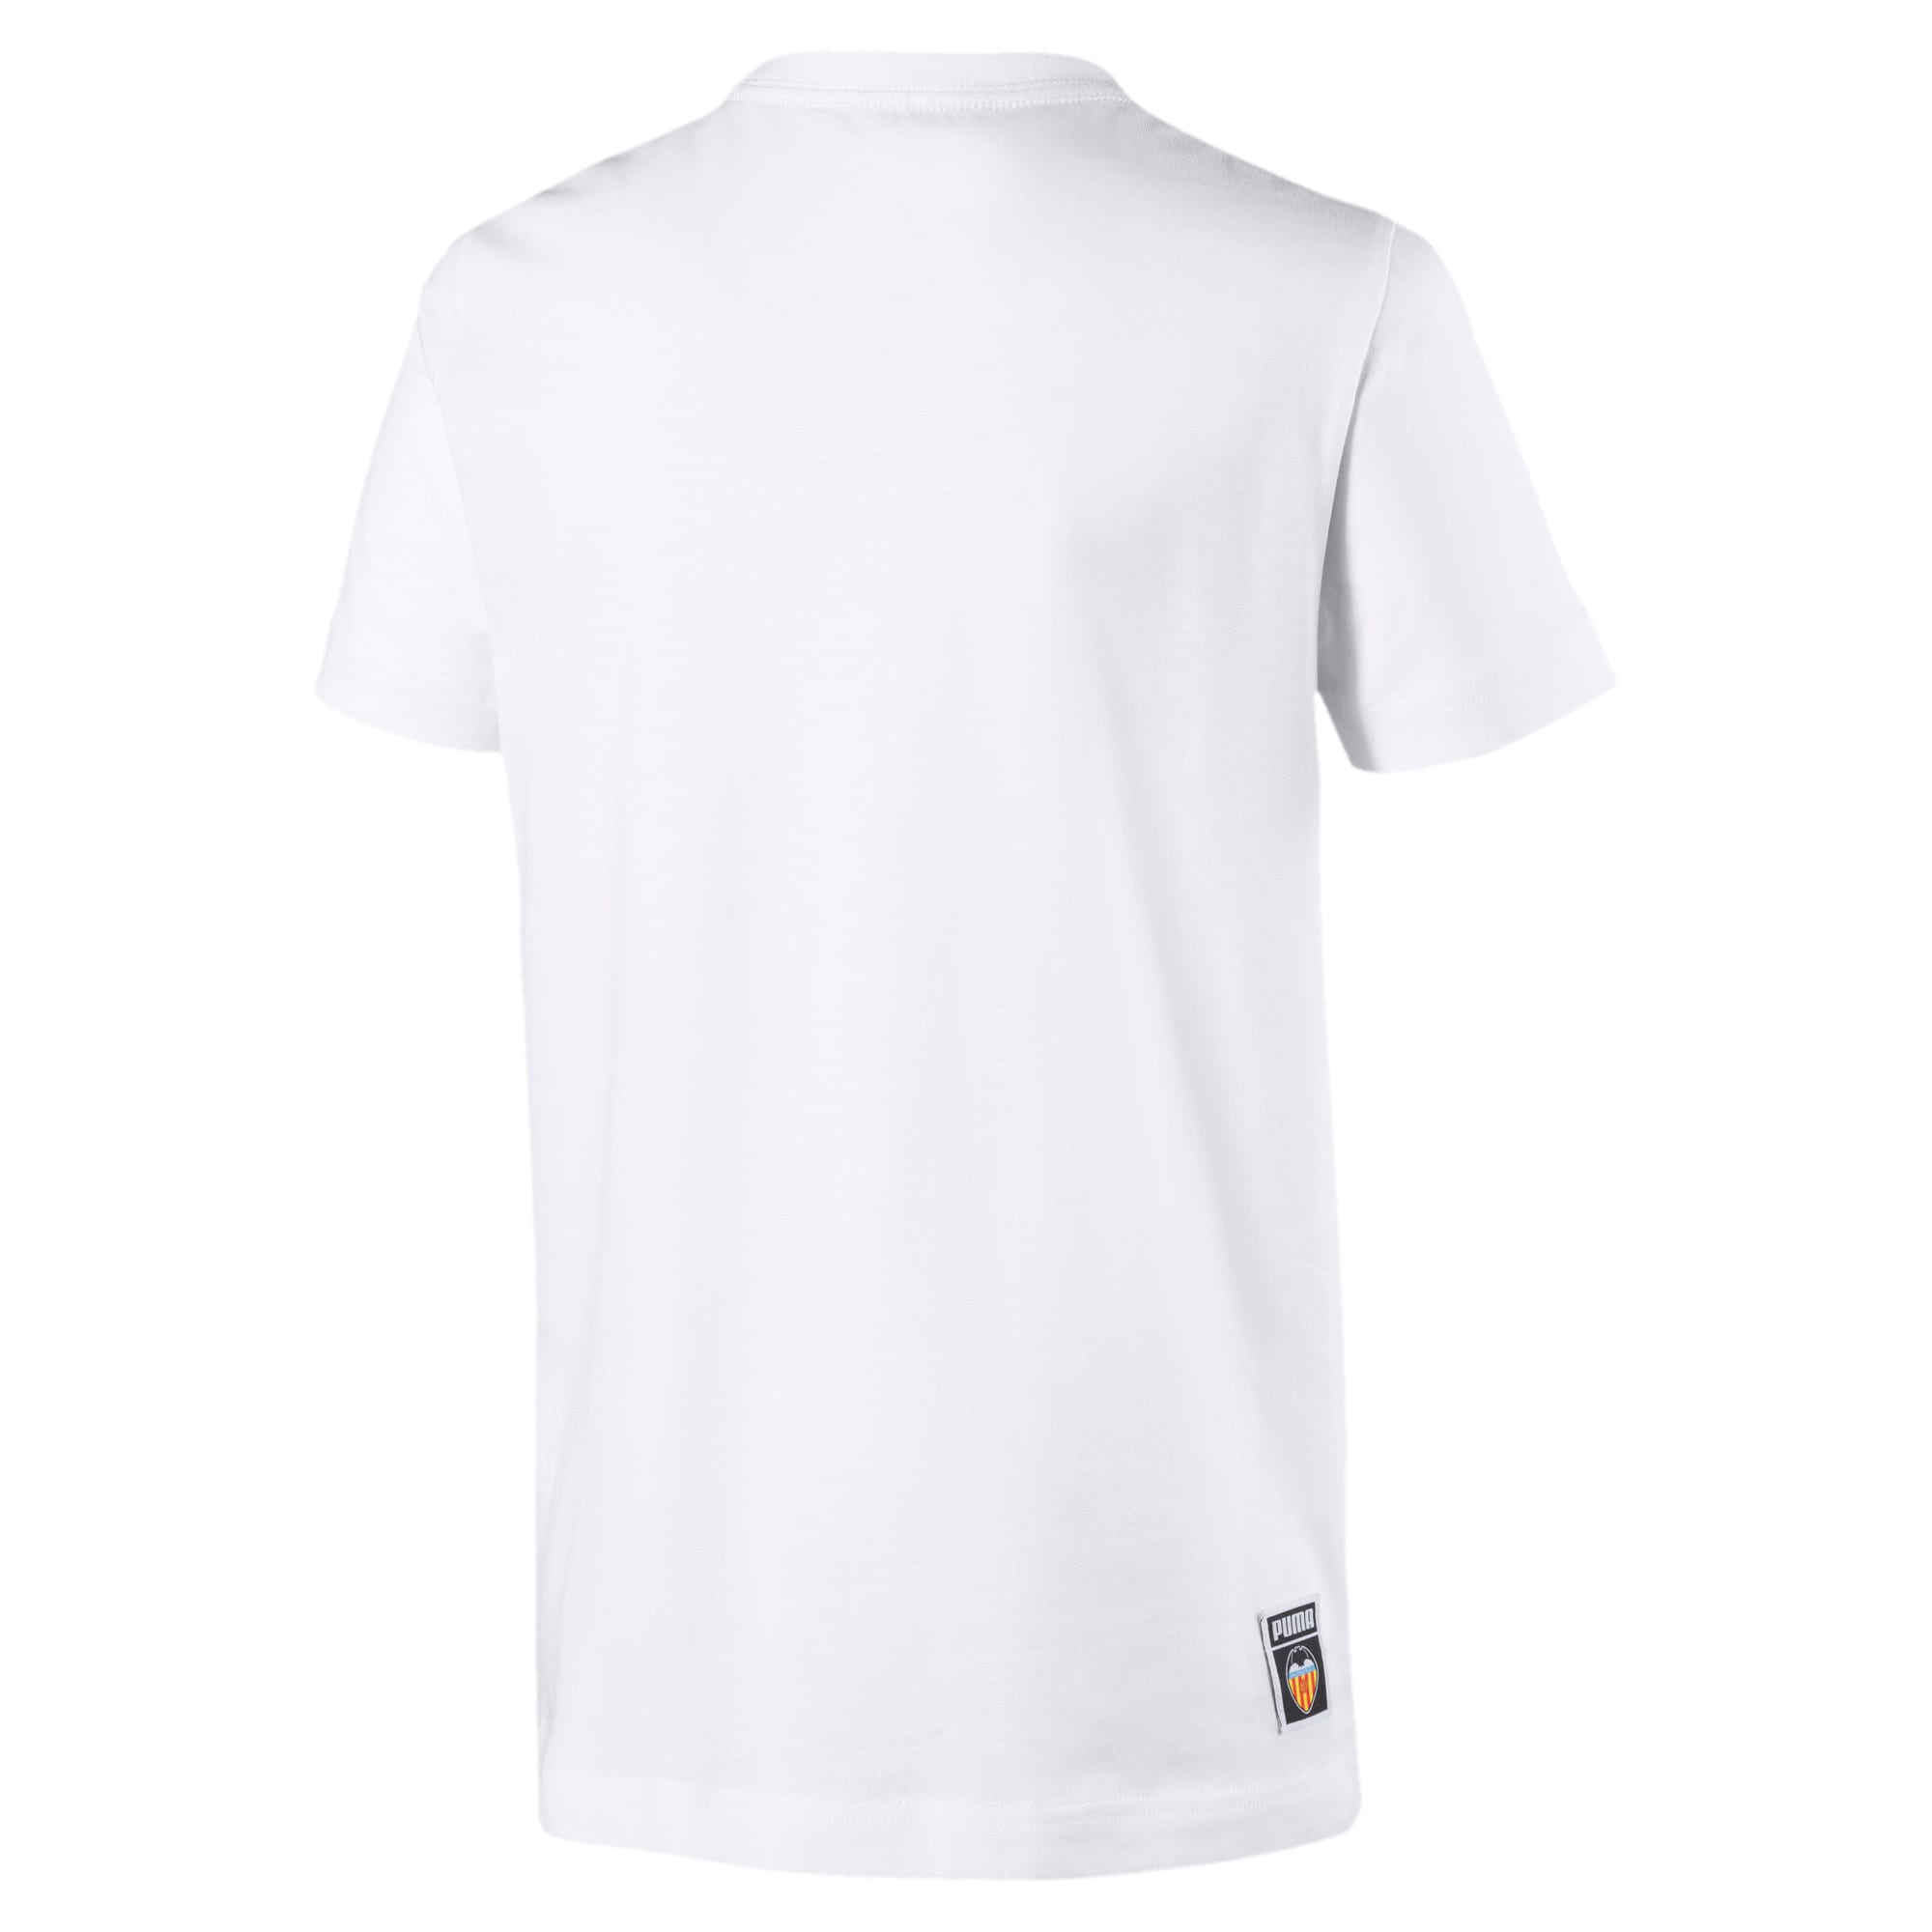 Thumbnail 2 of Valencia CF Shoe Tag Boys' Tee, Puma White, medium